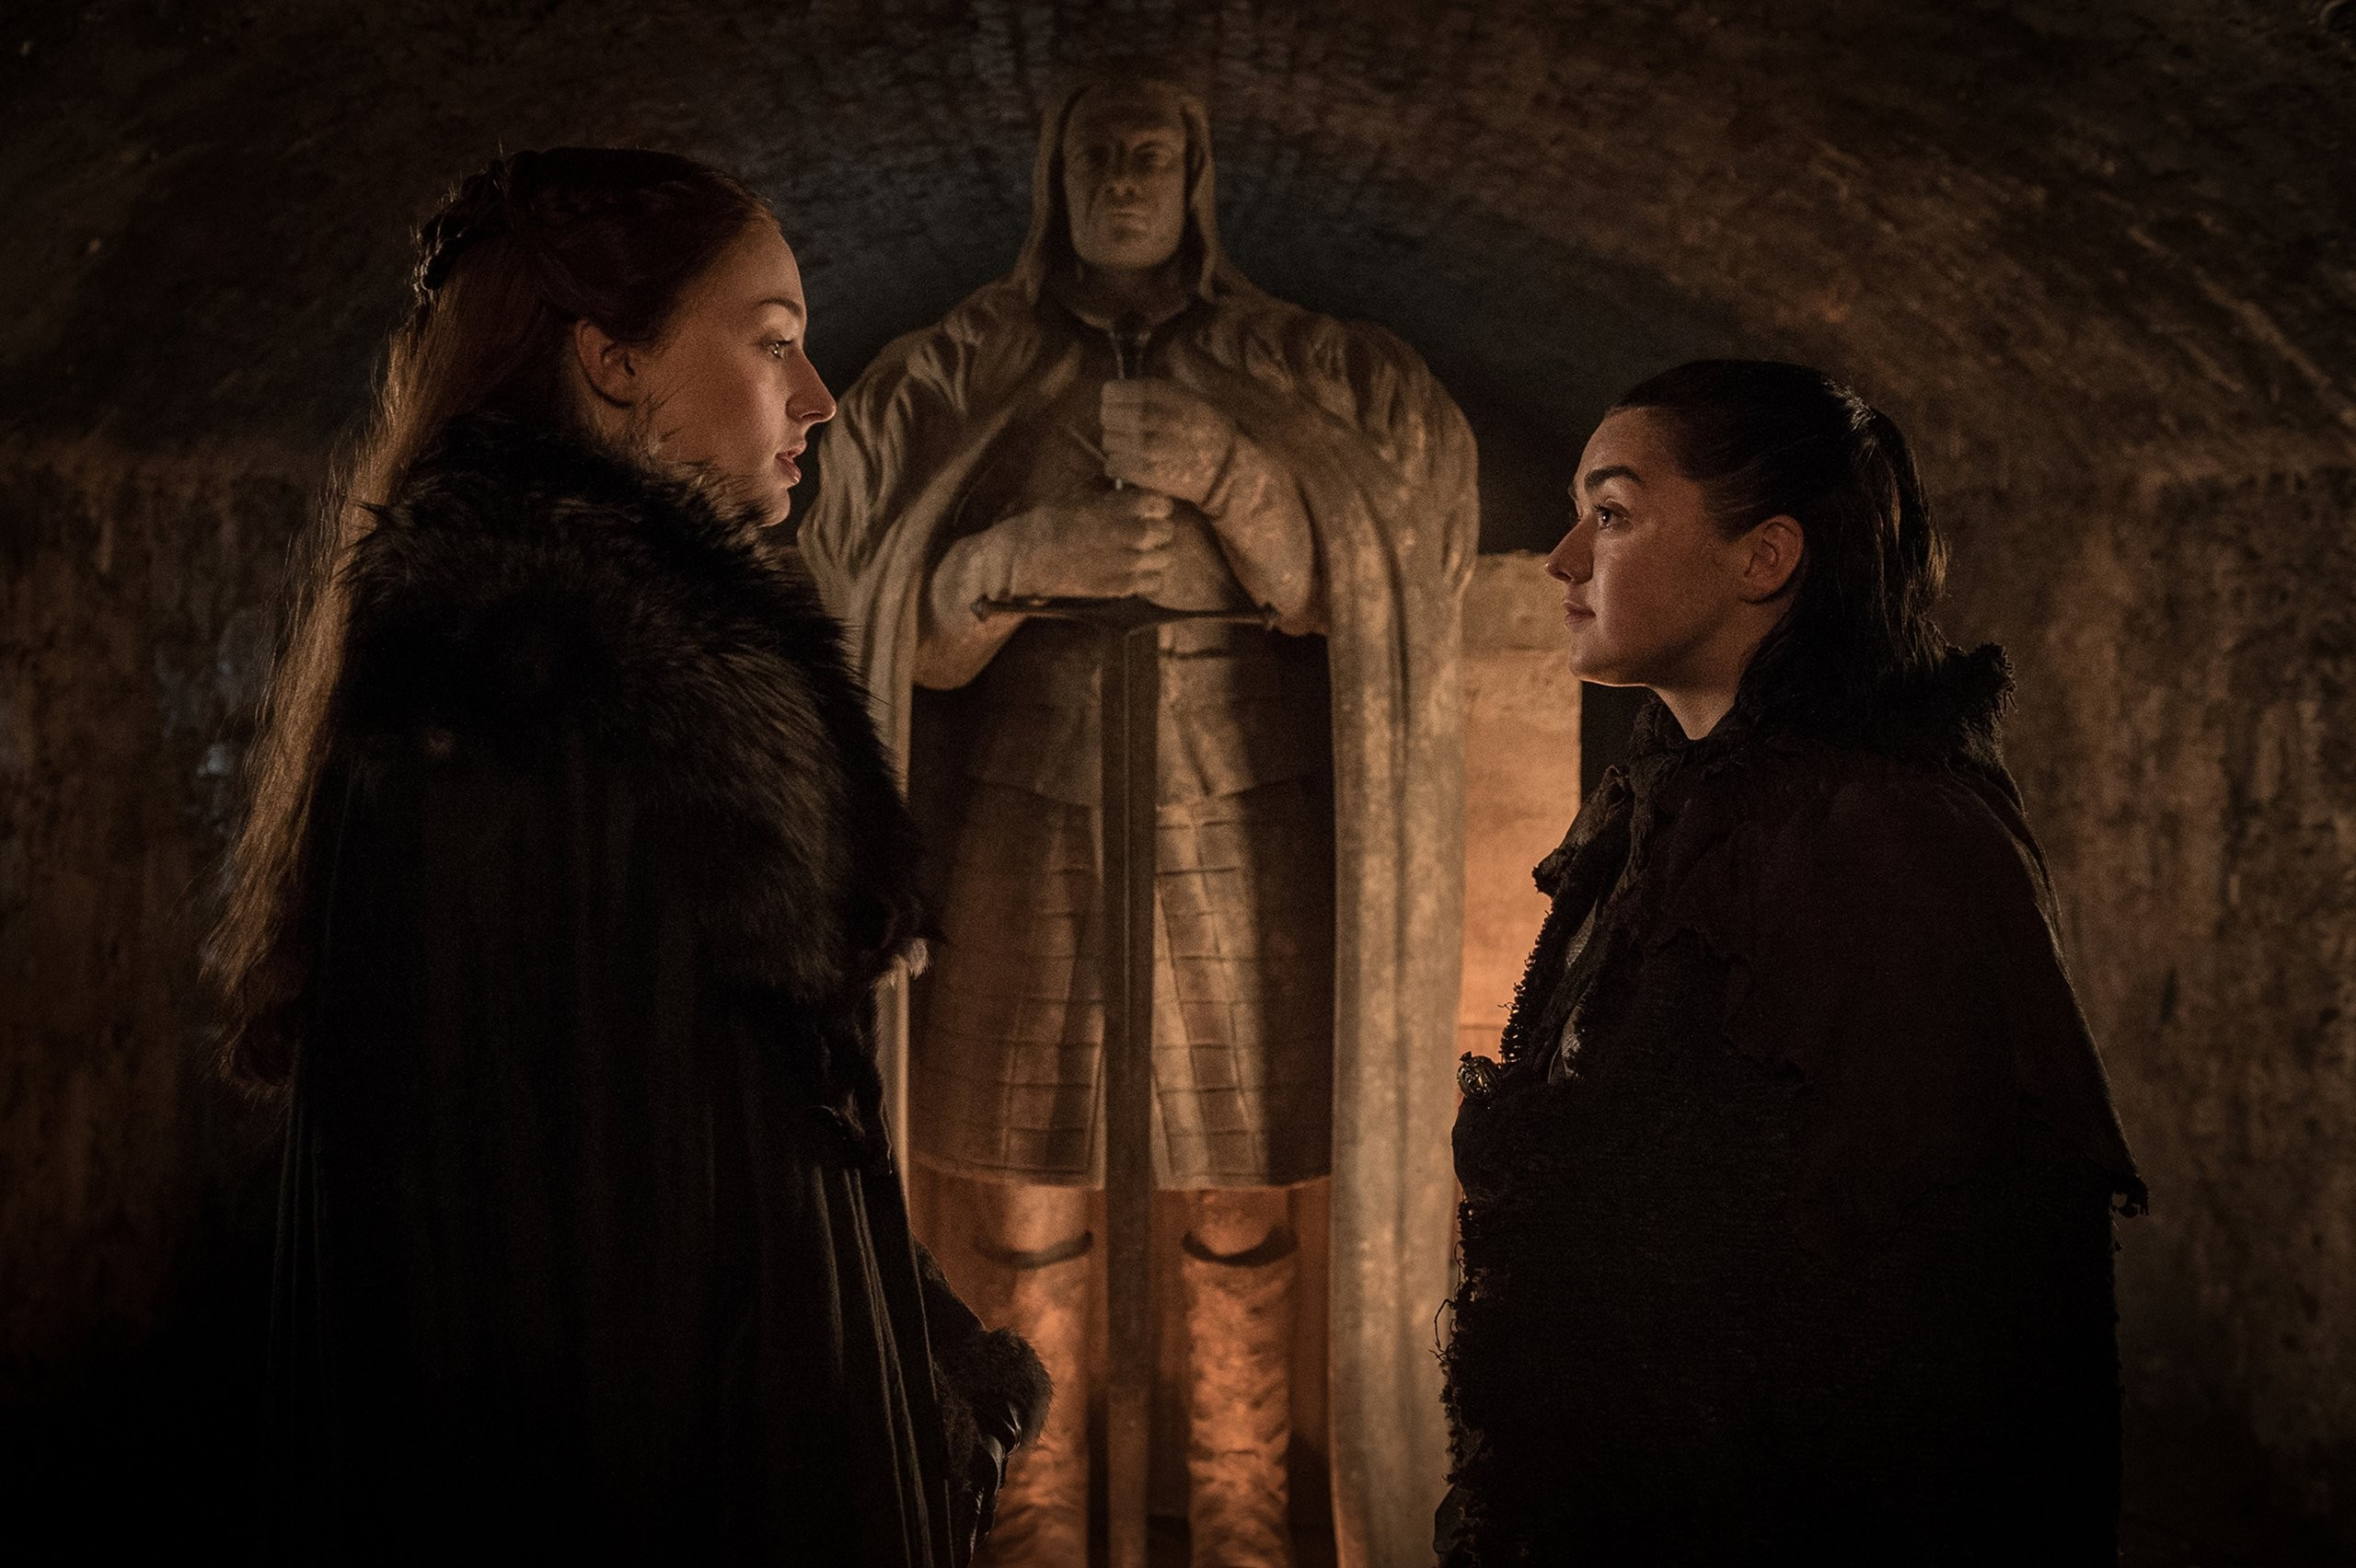 Sophie Turner e Maisie Williams em cena de Game of Thrones (Foto: Divulgação)